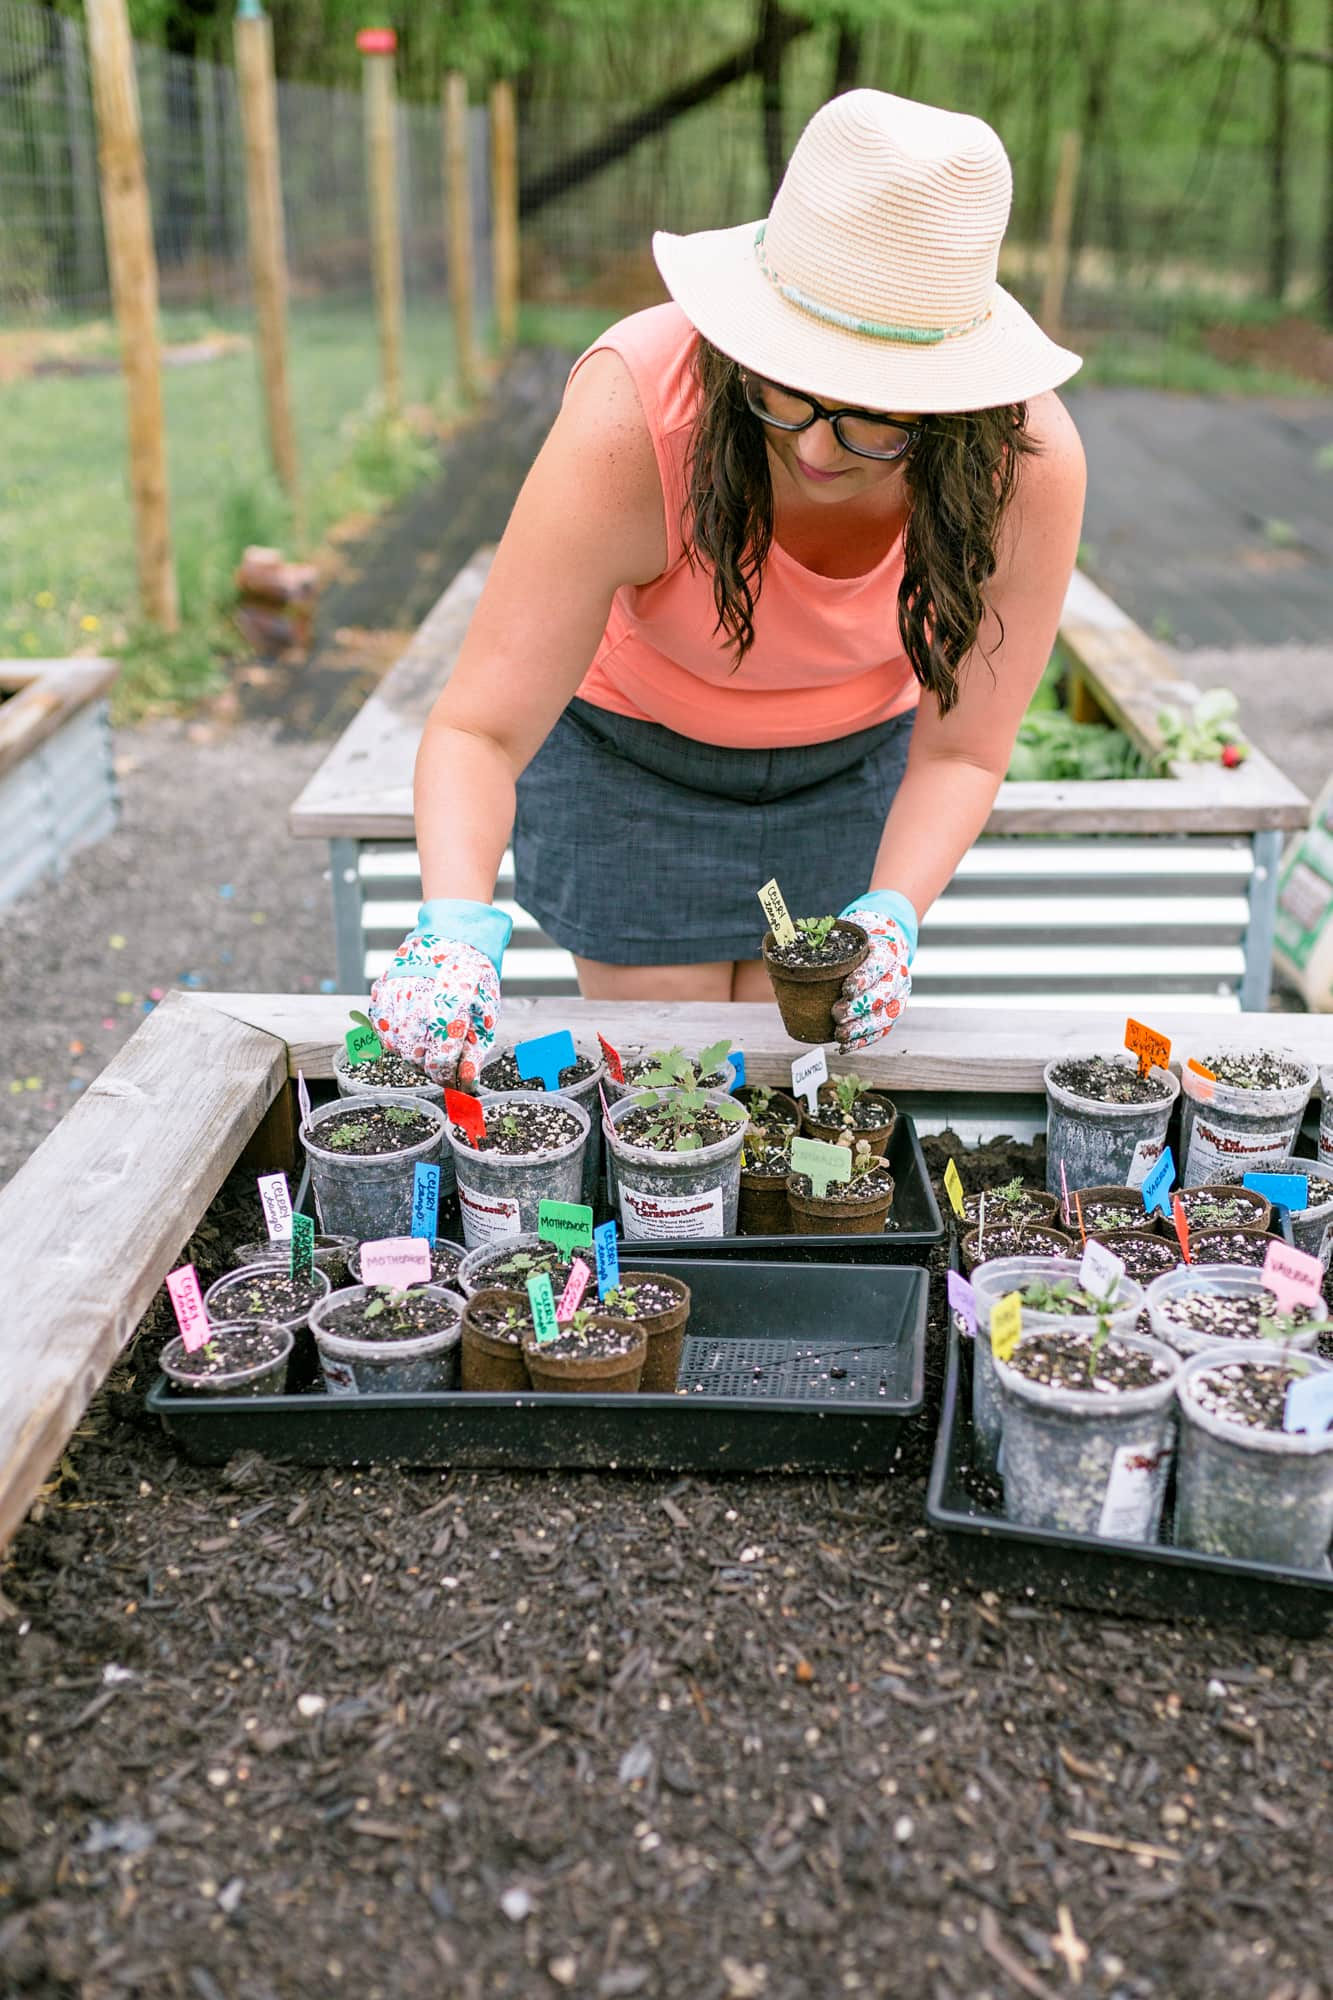 Woman leaning over trays of seedlings set into a raised bed.